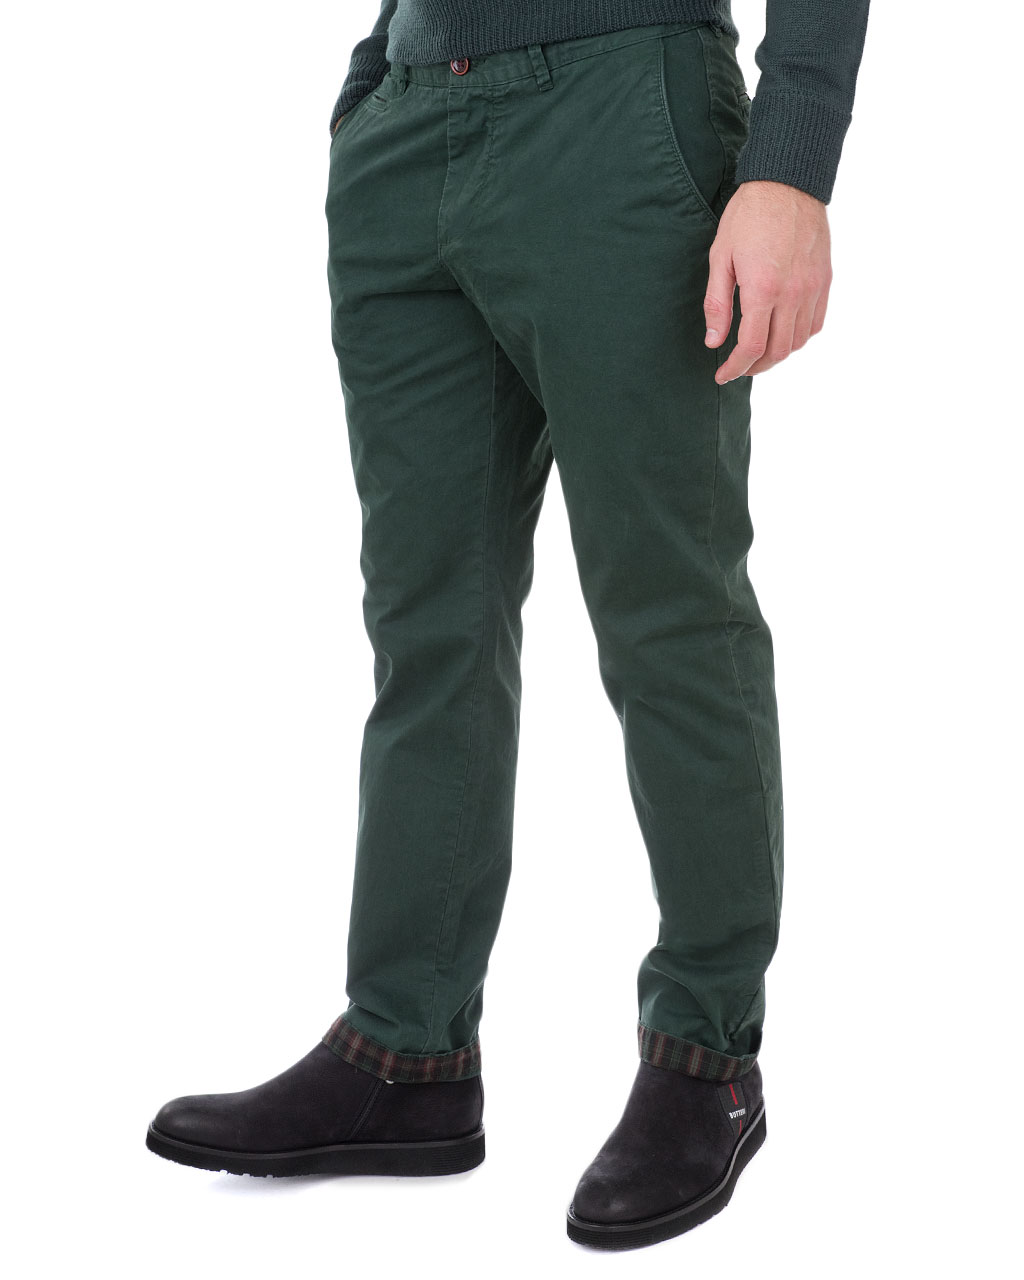 Men's trousers 140501520-Shane-bretish  (4)